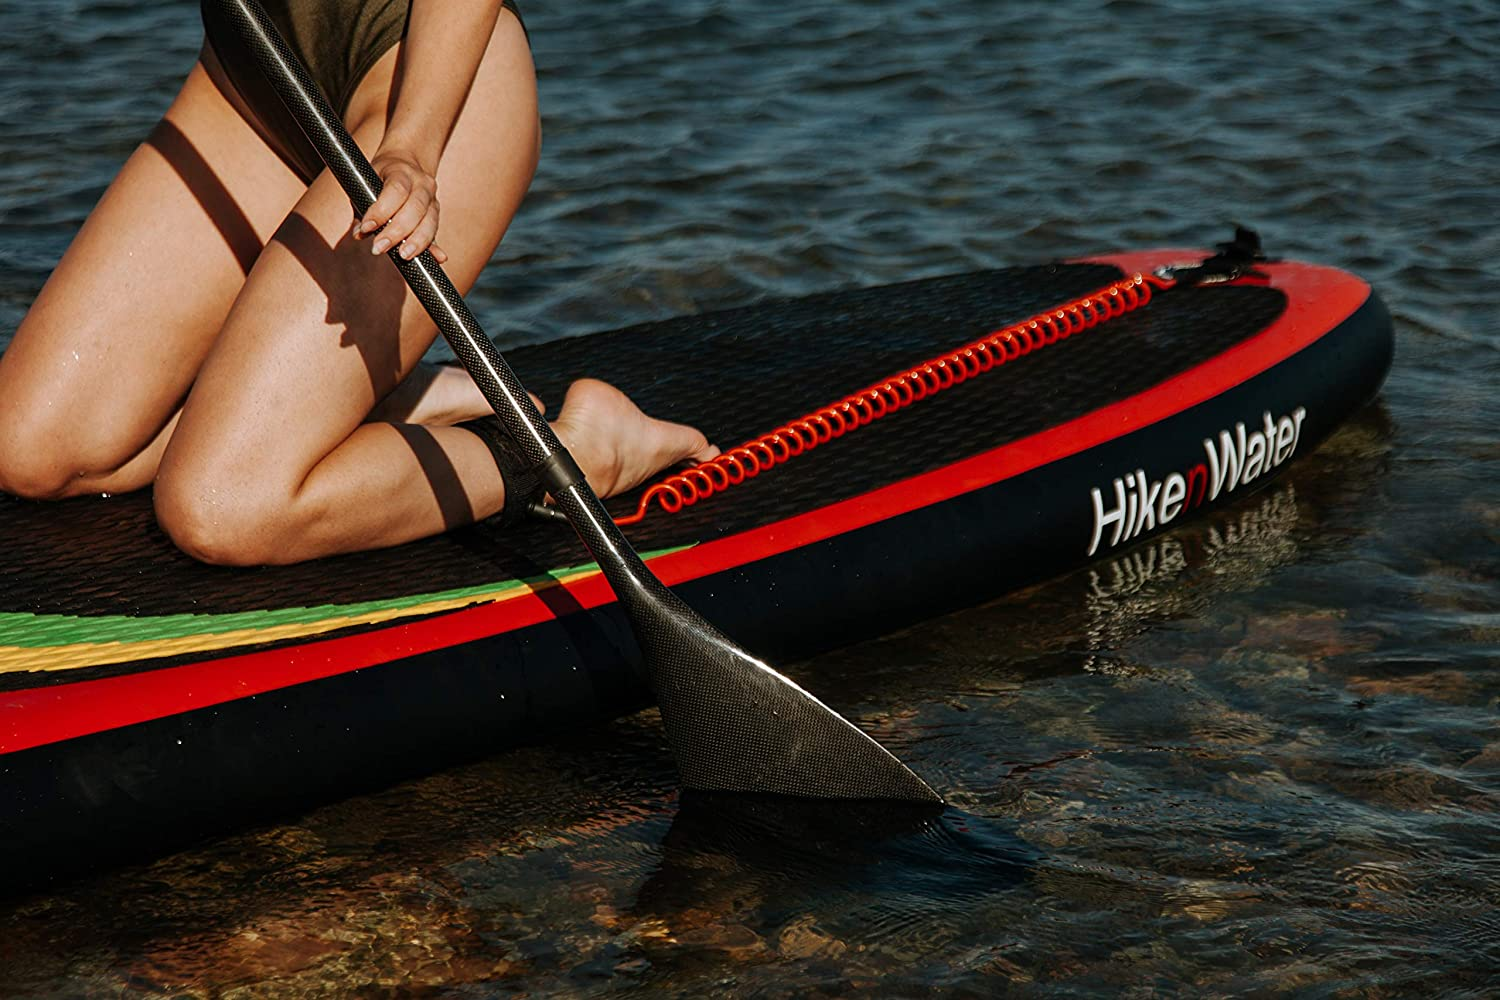 iRide Carbon Paddle for SUP 100 Full Carbon Fiber Shaft Blade Ultralight Oar 19 OZ 3-Piece Adjustable for Isup Stand Up Paddleboard Carrying Case Dry Bag for Free Fast Delivery